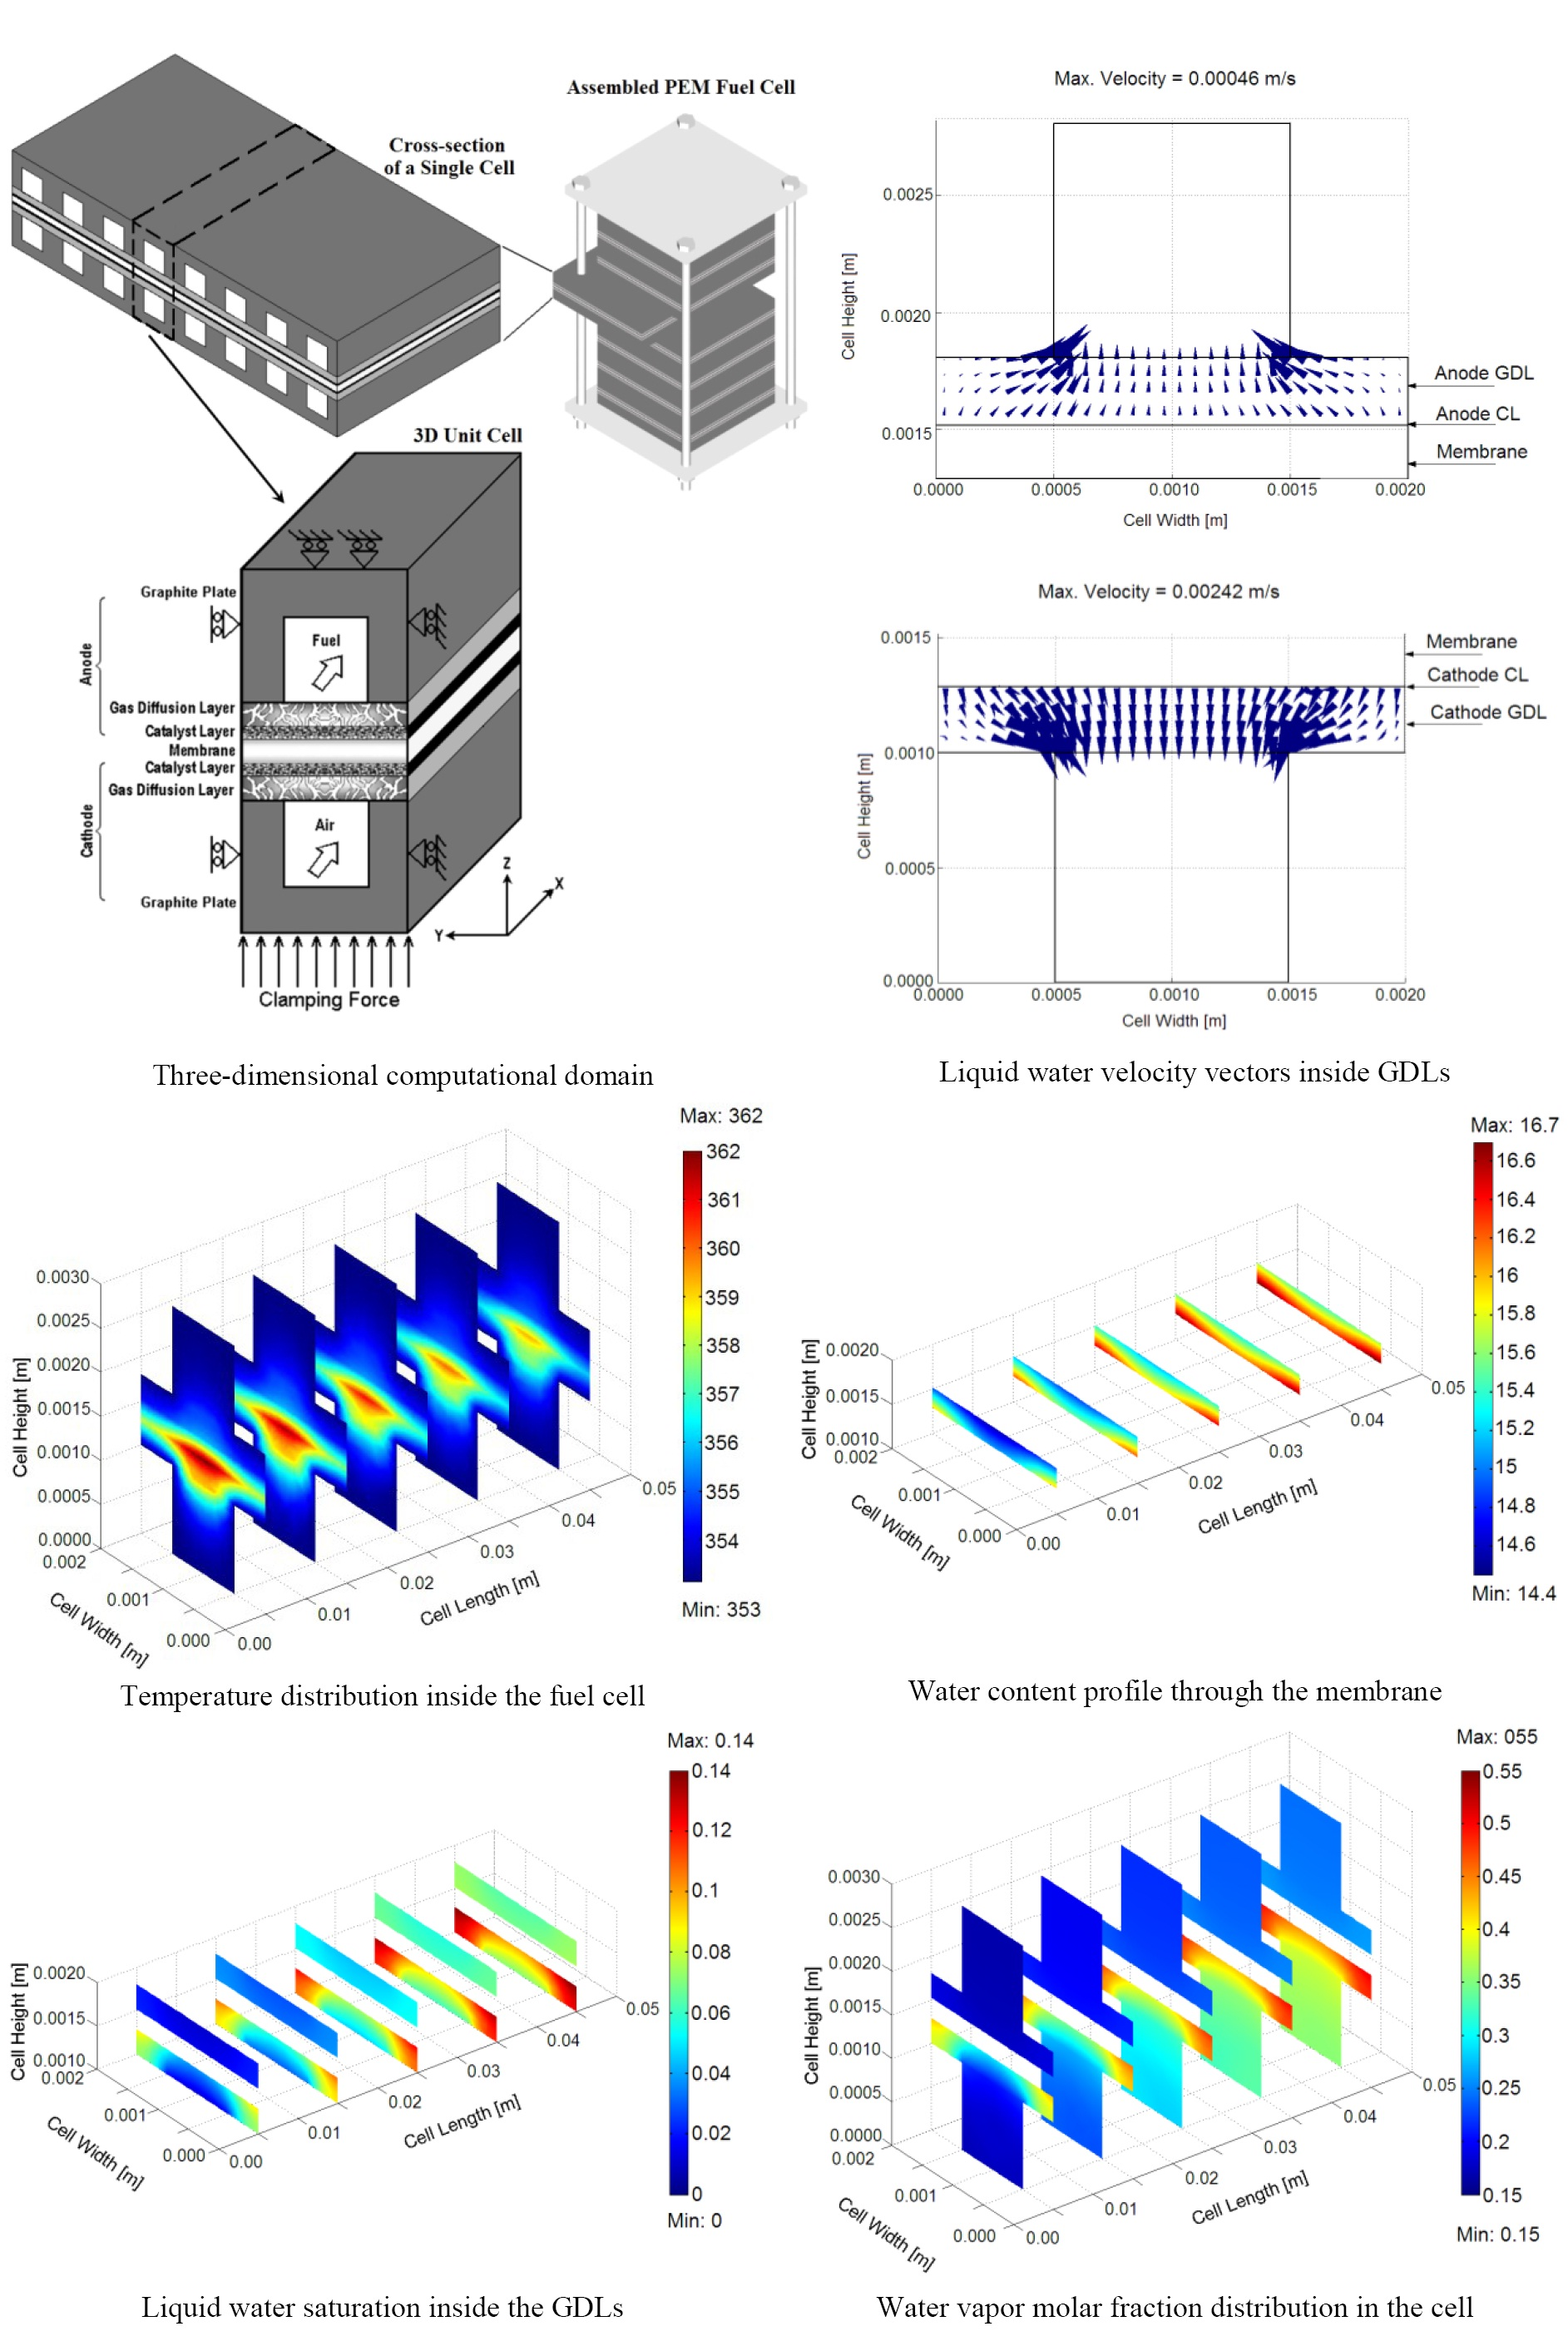 Figure 2. Three Dimensional CFD modeling results of a PEM fuel cell [5-8].